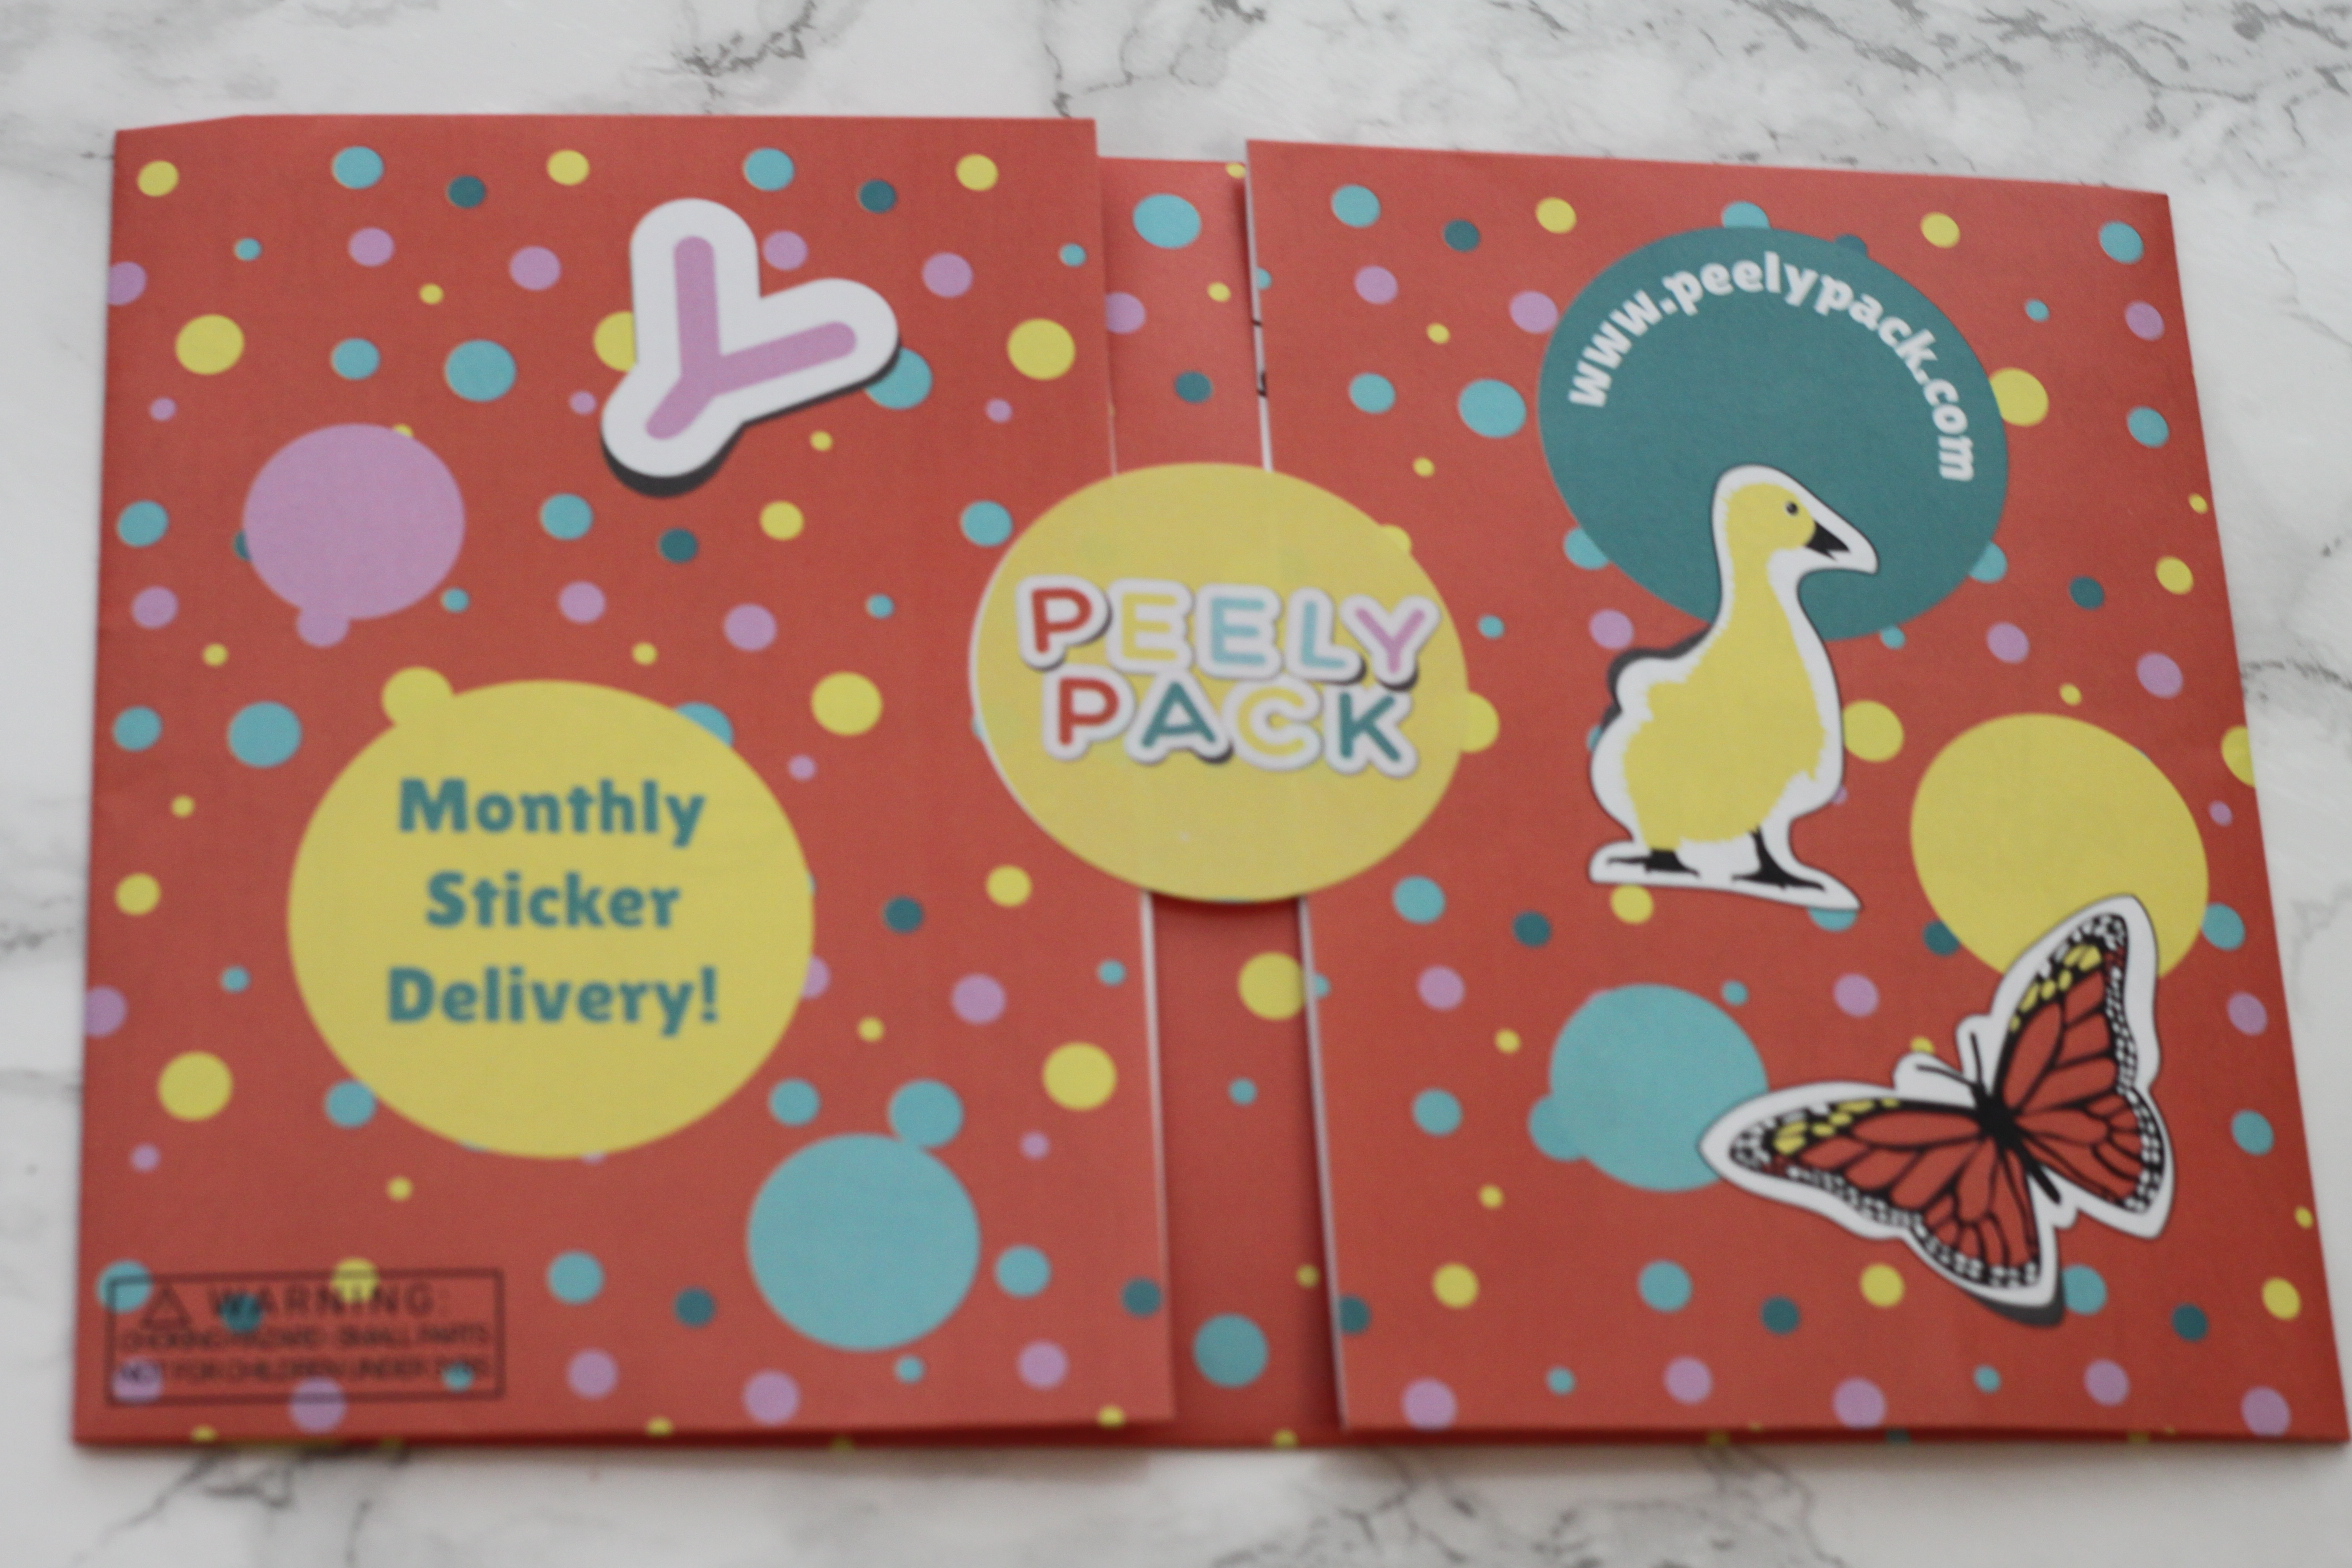 Peely Pack March 2017 Sticker Subscription Review